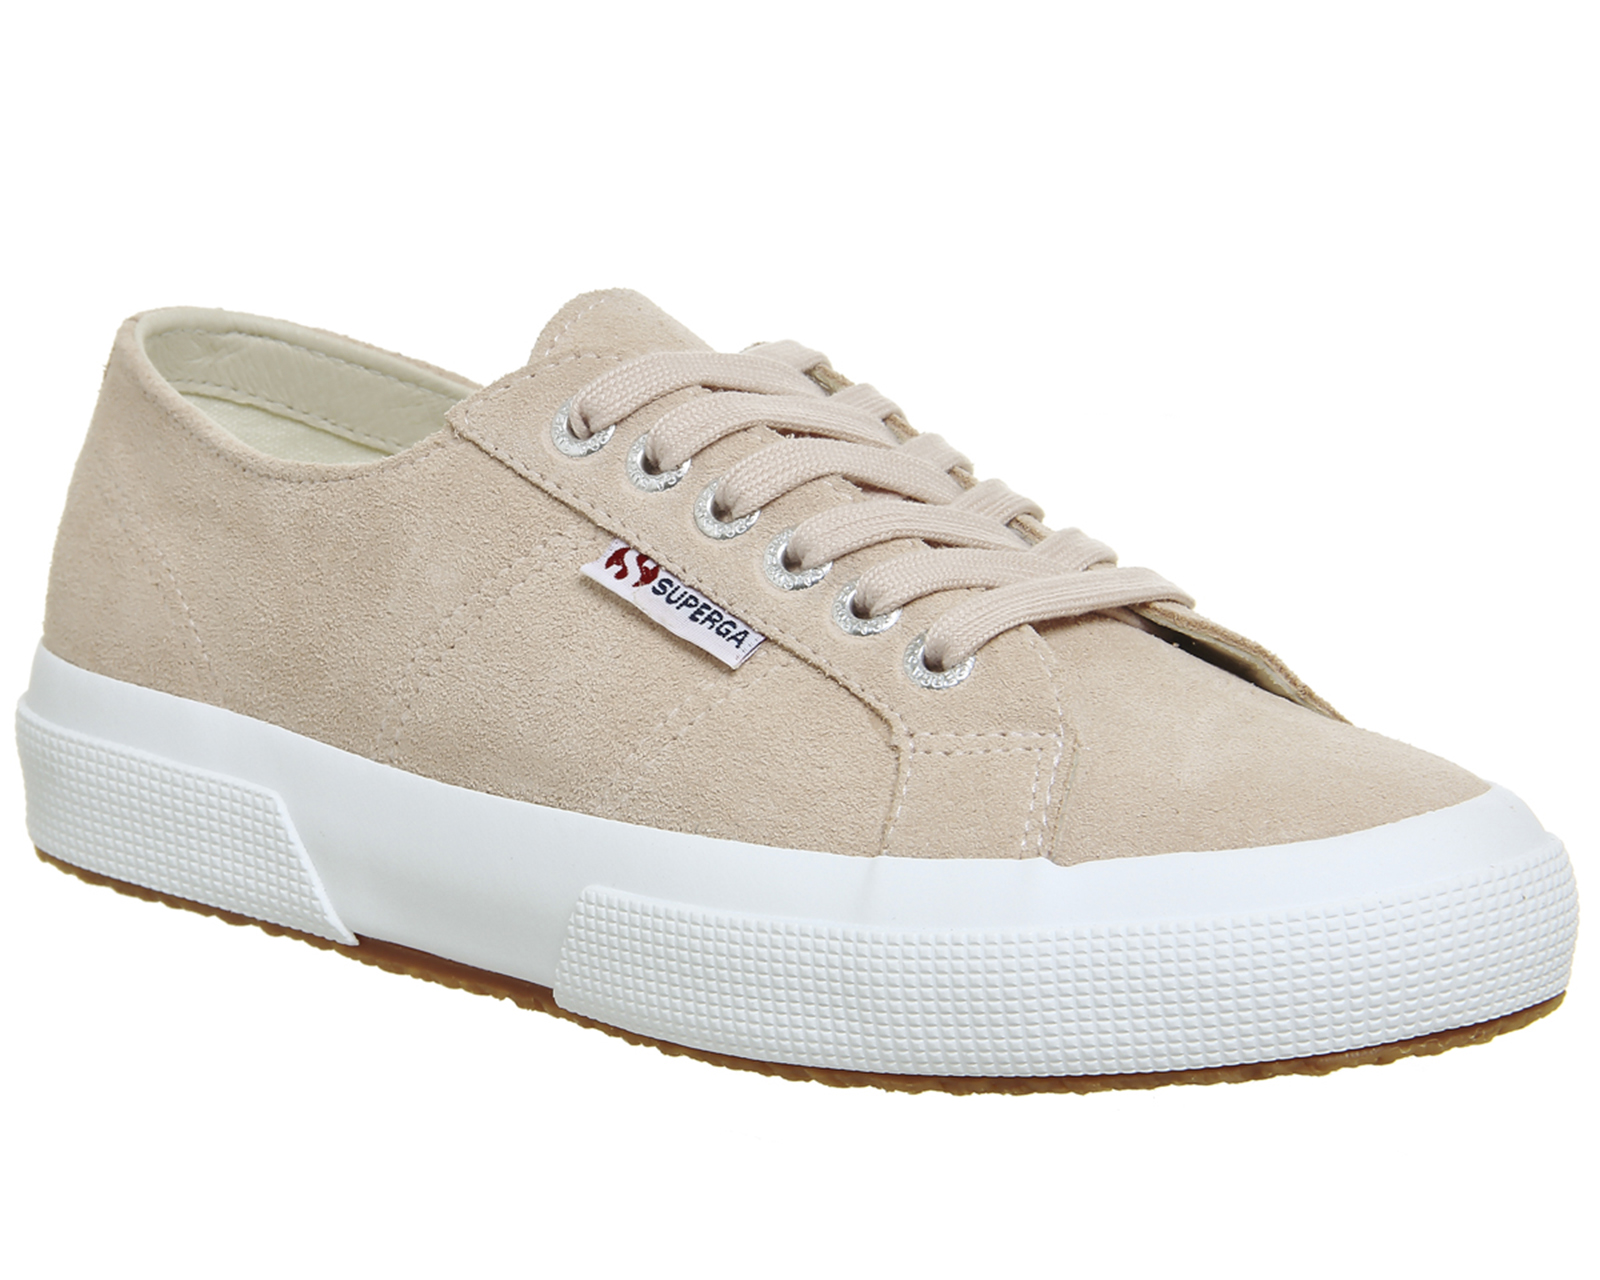 3b559c487d929 Sentinel Womens Superga 2750 Trainers Pink Skin Suede Trainers Shoes